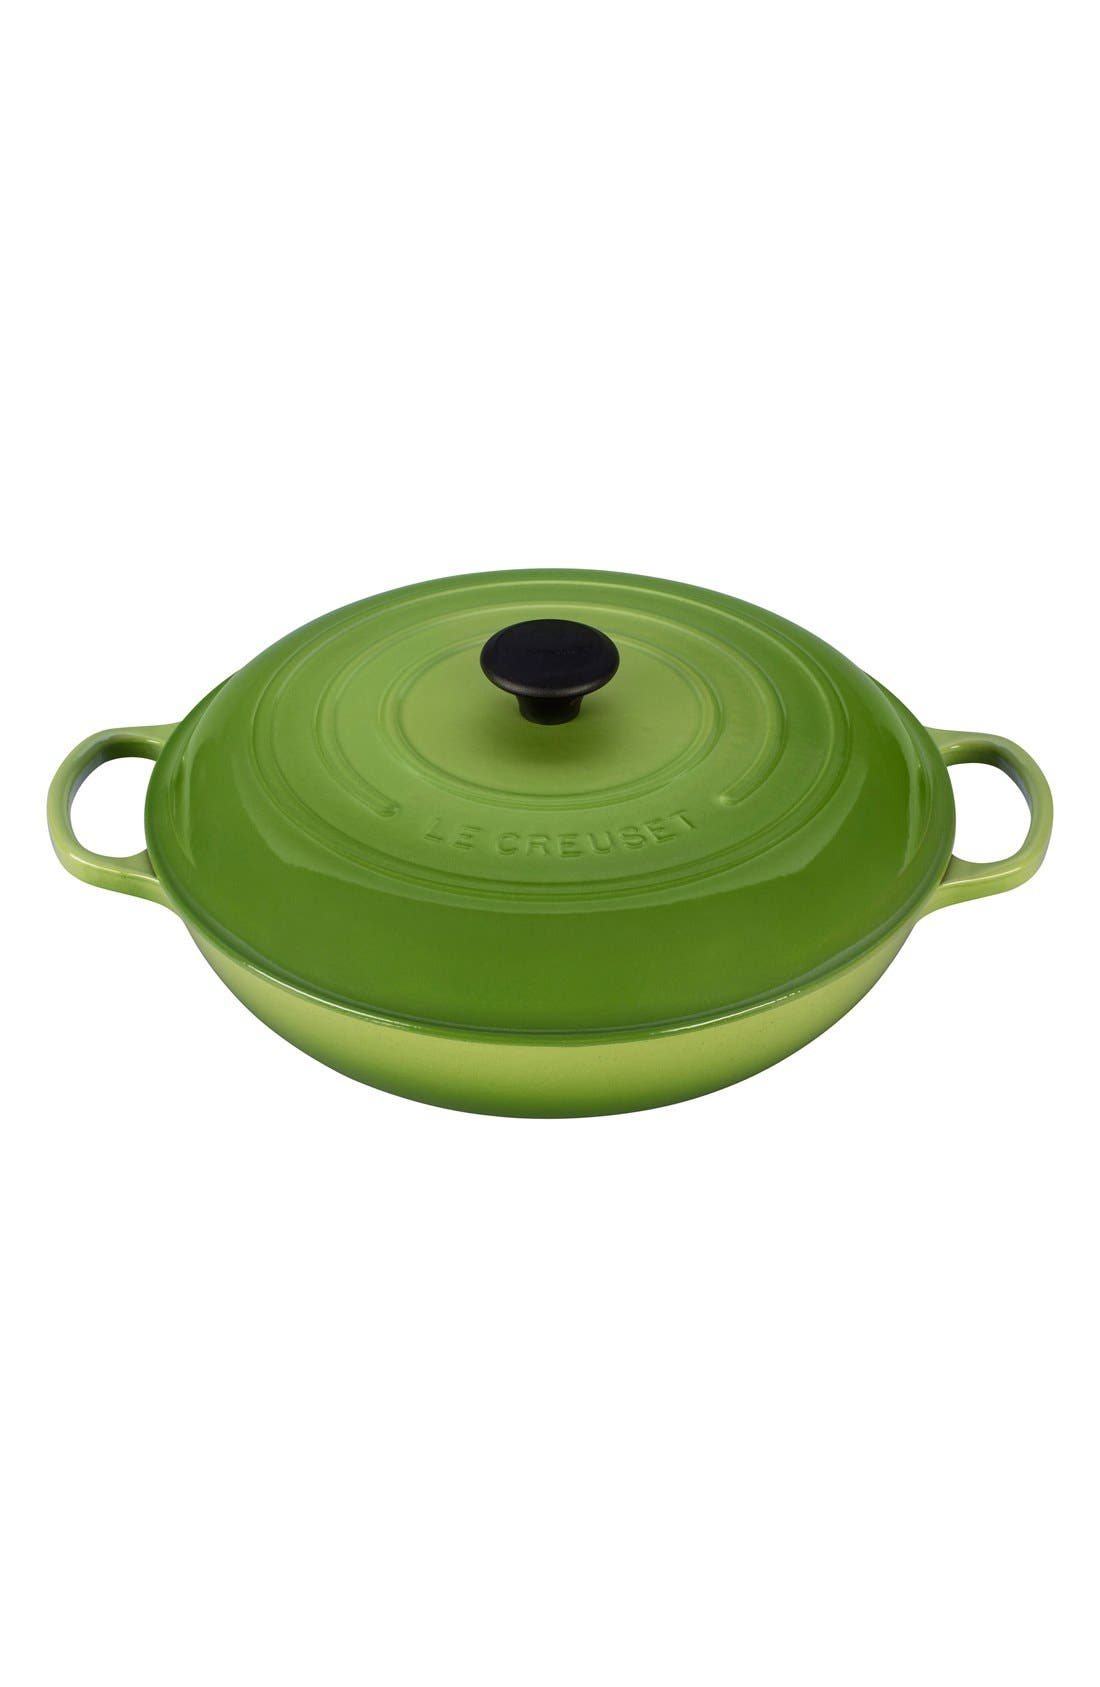 Le Creuset Signature 5 Quart Enameled Cast Iron Braiser